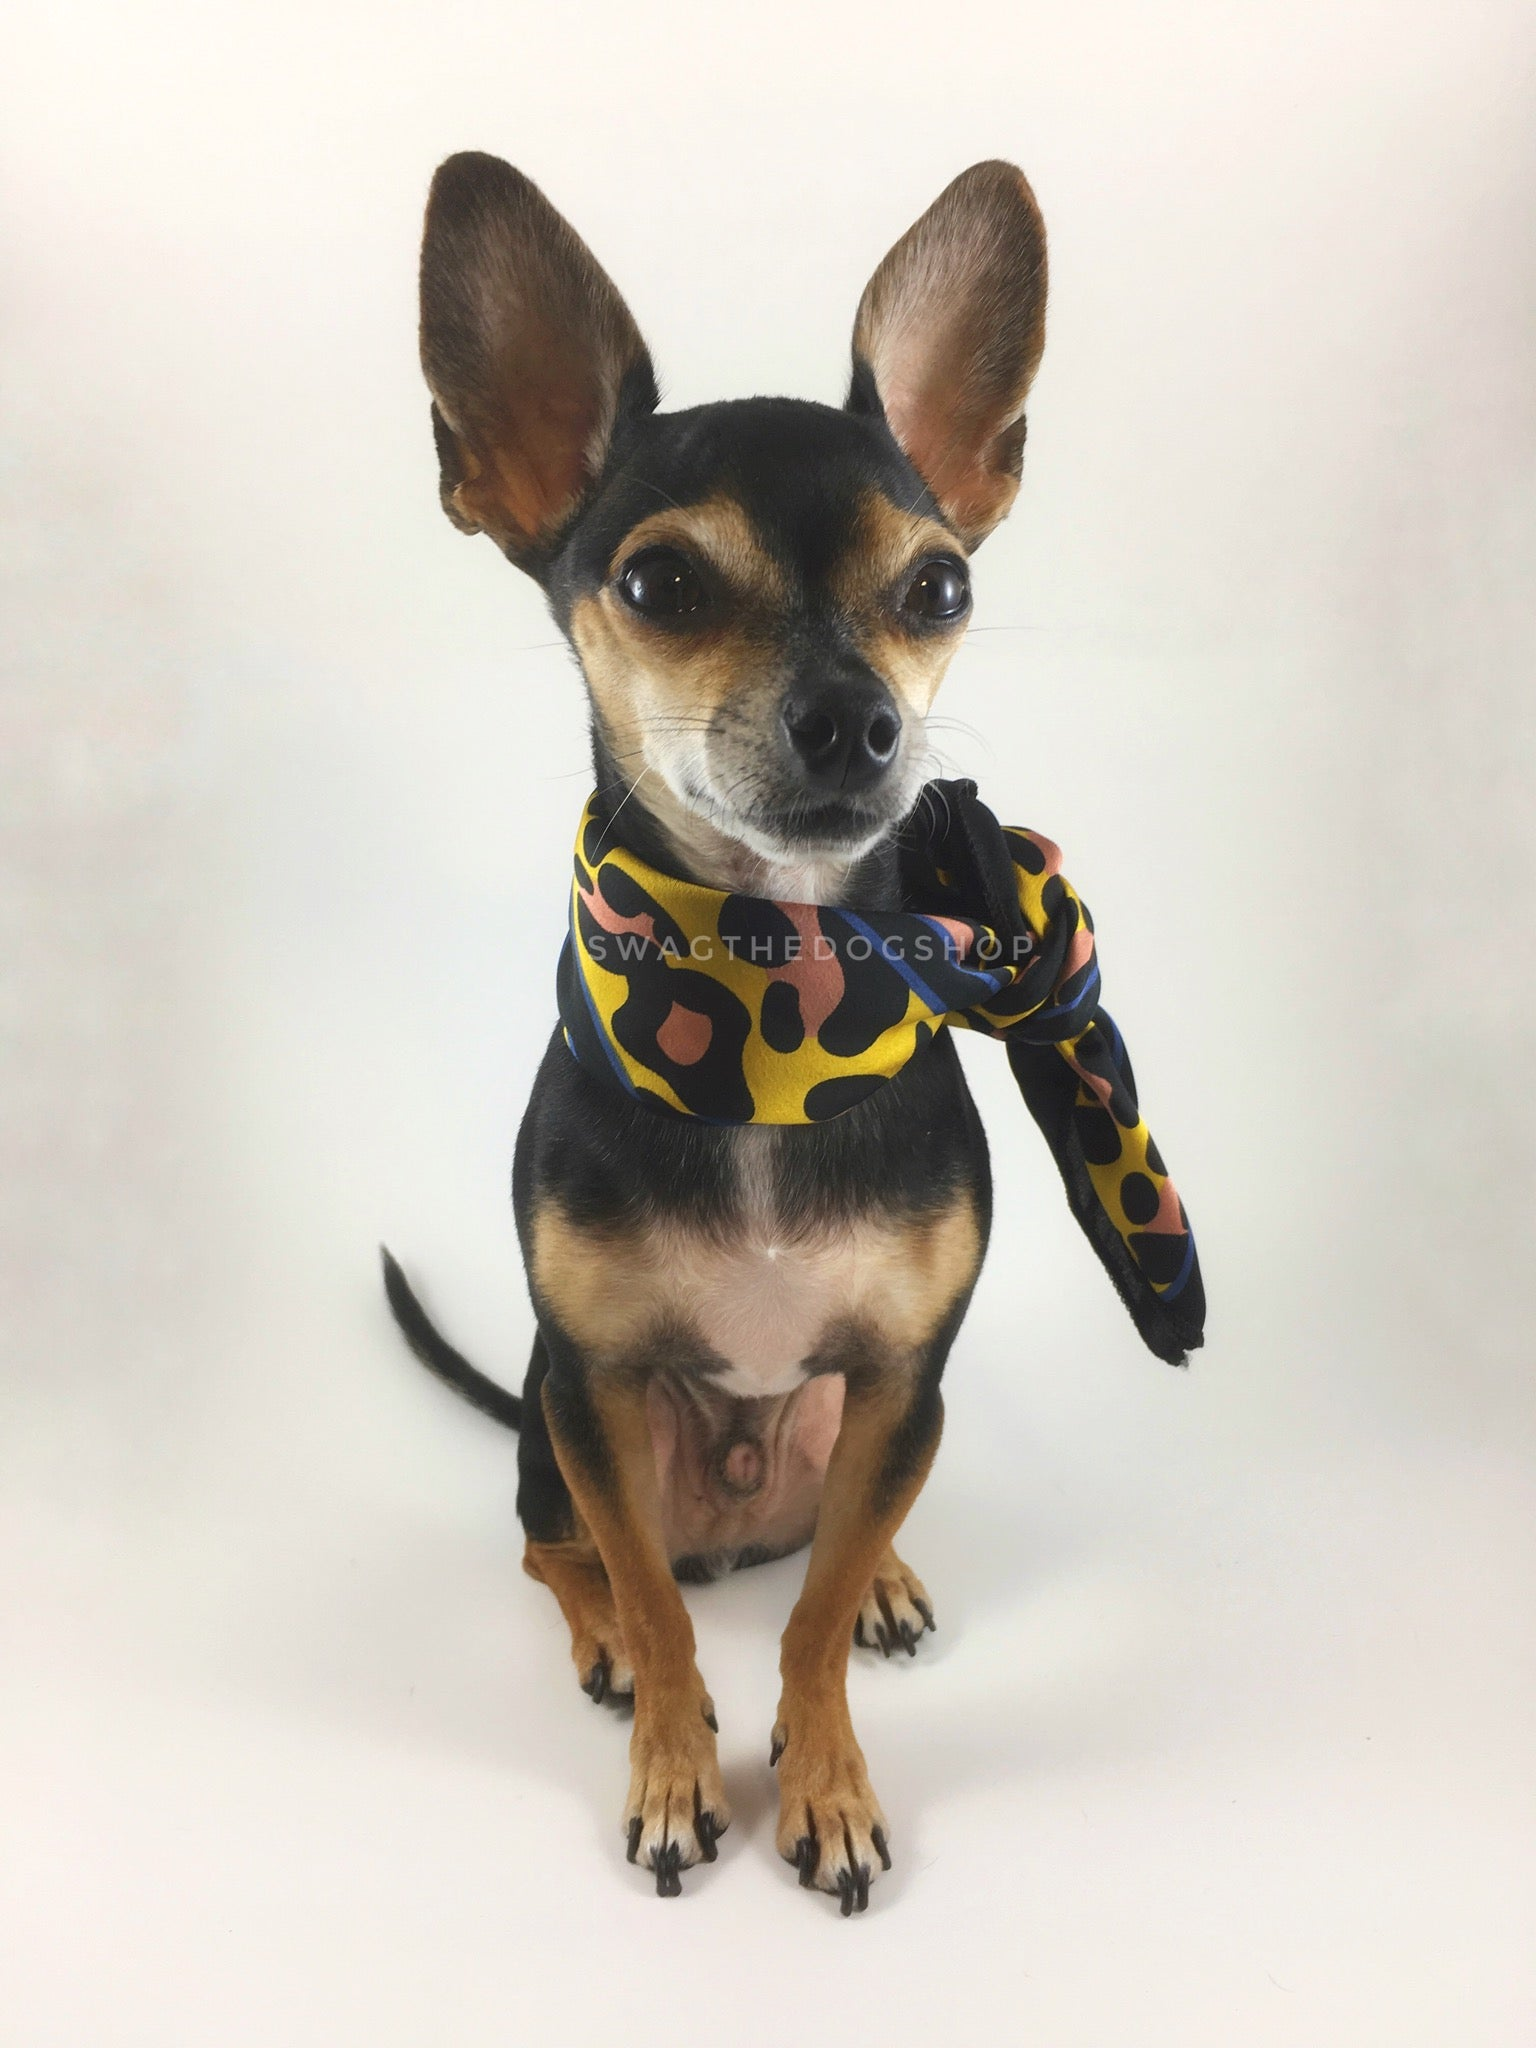 Leopard Sunflower Yellow Swagdana Scarf - Full Front View of Cute Chihuahua Wearing Swagdana Scarf as Neckerchief. Dog Bandana. Dog Scarf.